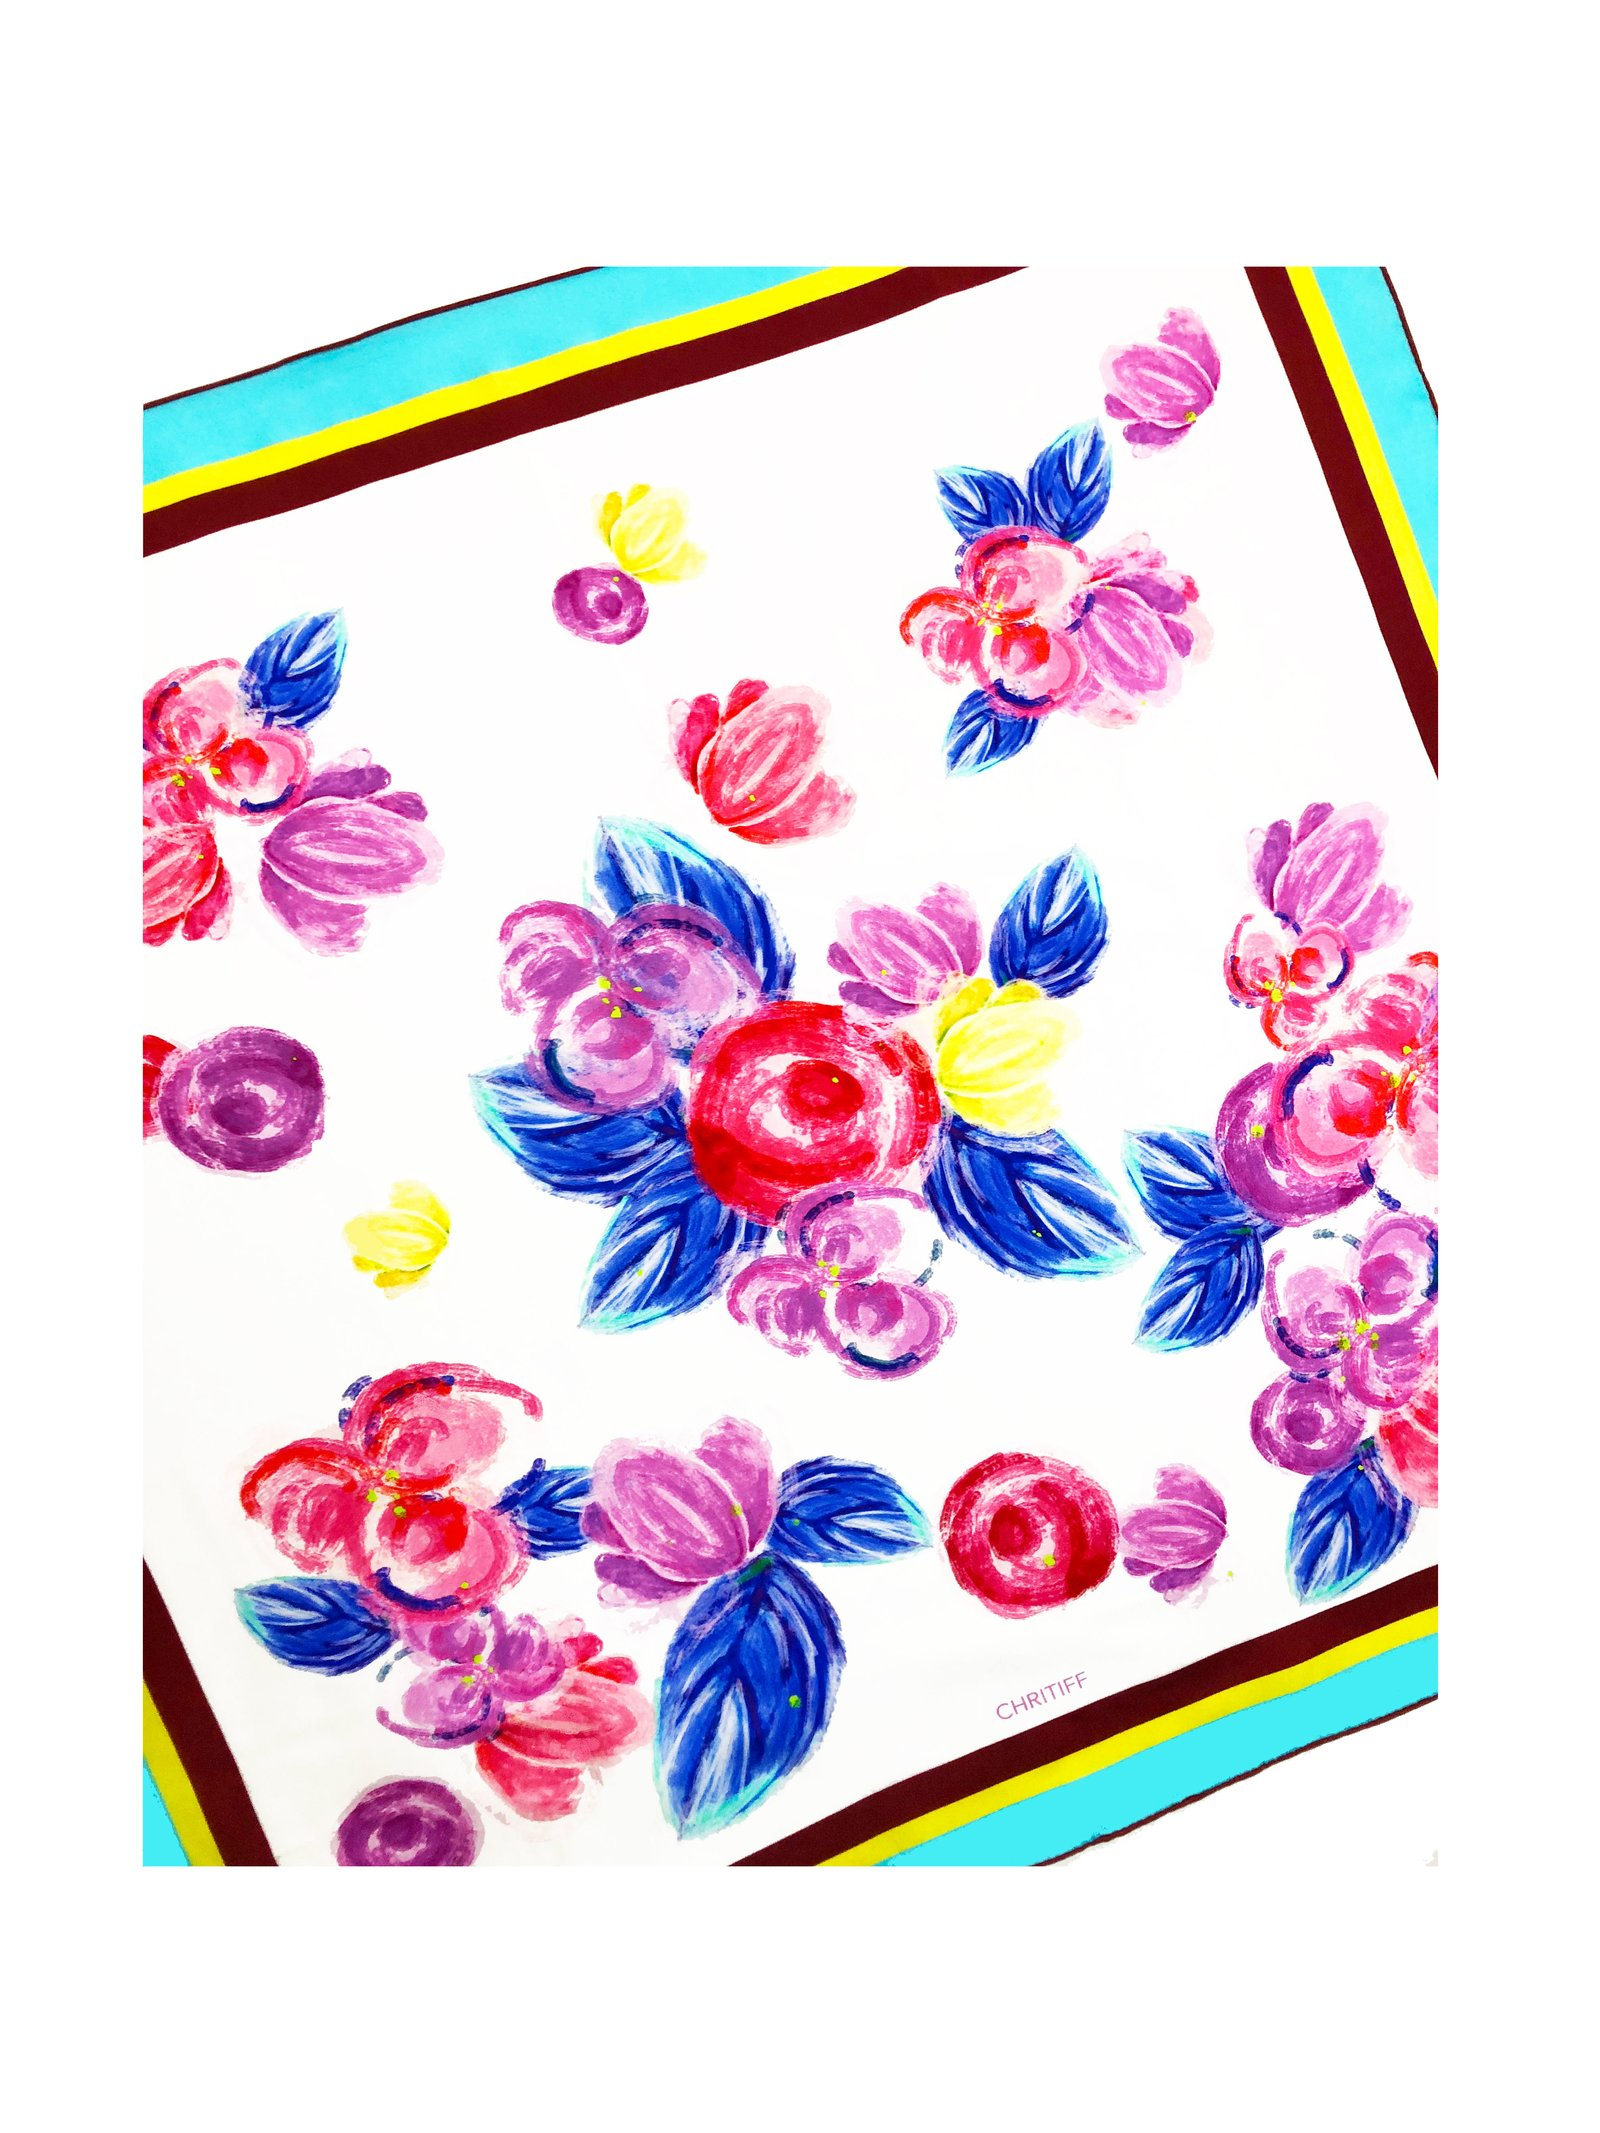 CHRITIFF Cherry Blossom Scarf (Multicolour) 70cm